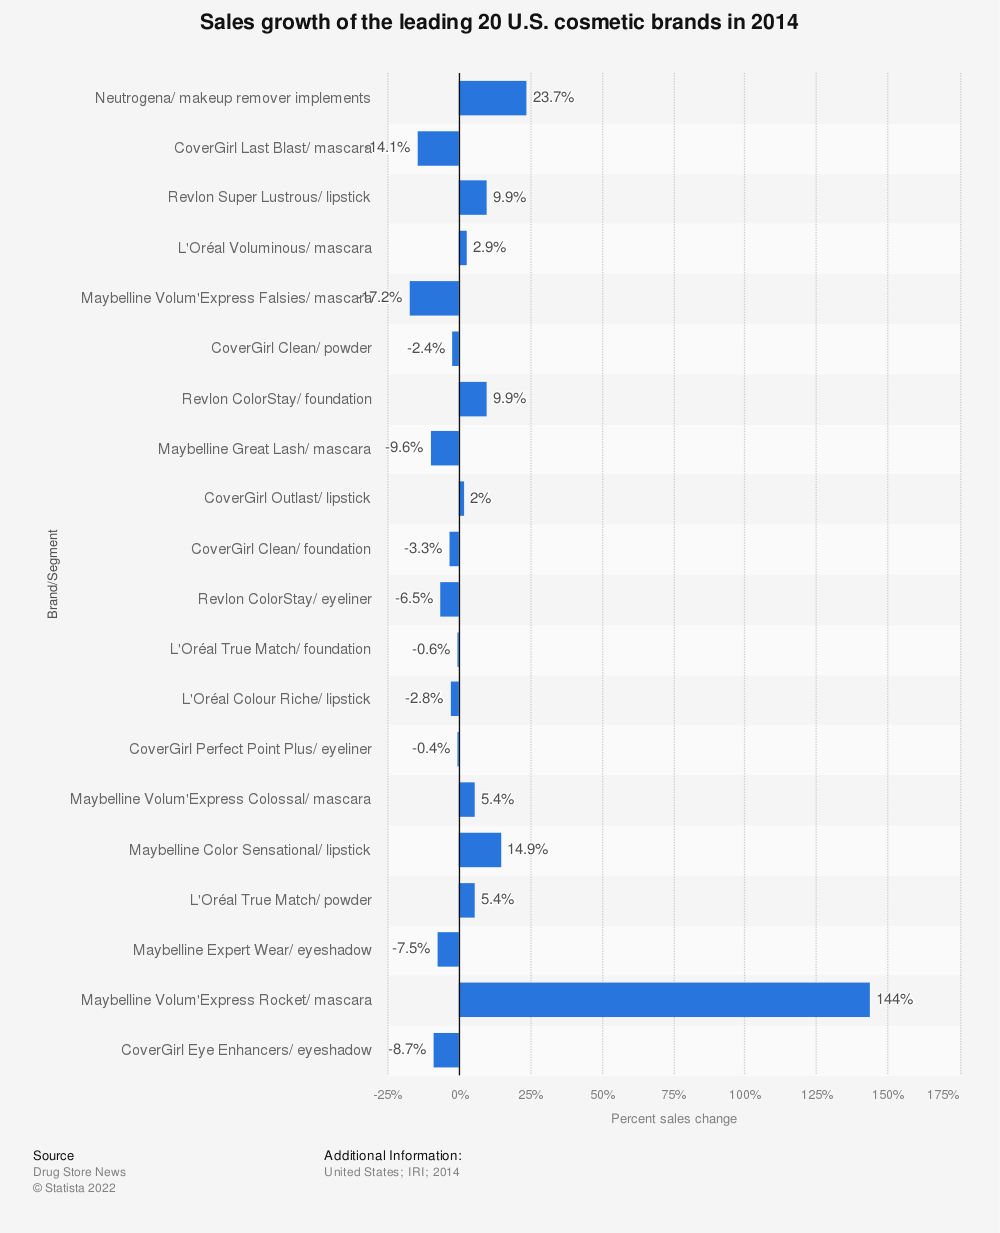 Statistic: Sales growth of the leading 20 U.S. cosmetic brands in 2014 | Statista